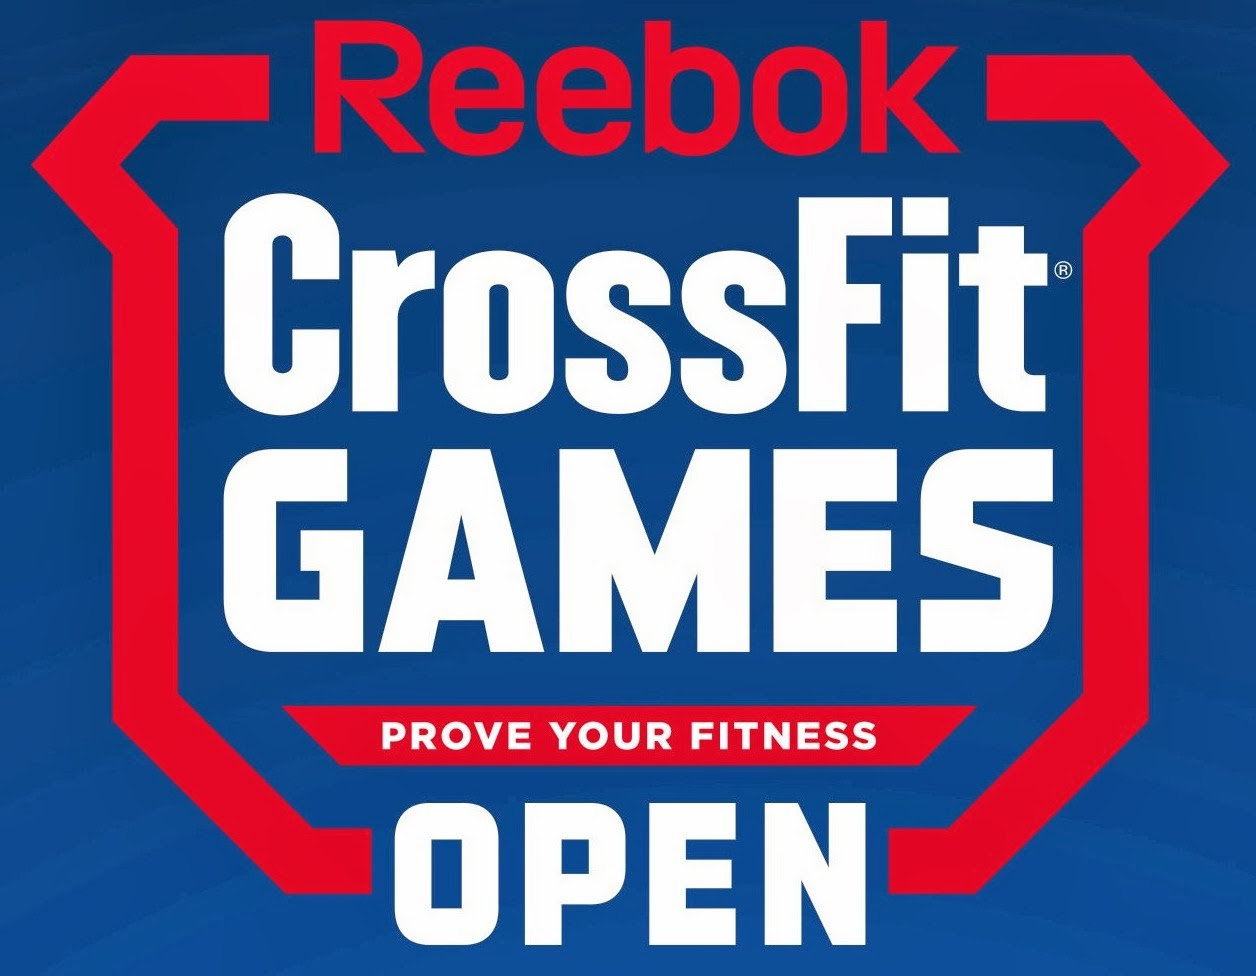 CrossFit Games - The Open and You! | CrossFit YO4 - Forging